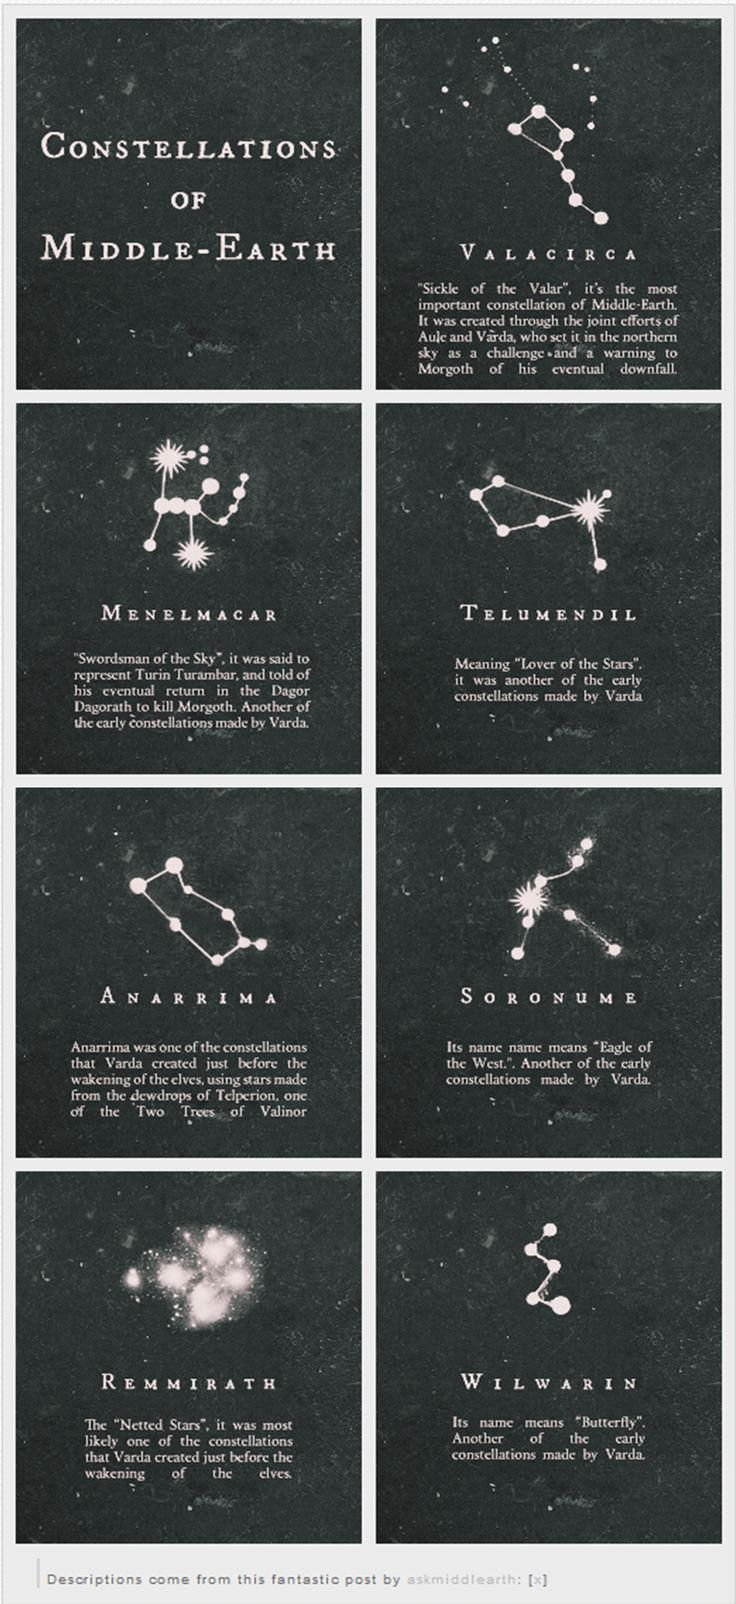 """Constellations of Middle Earth"" - Sauce: http://askmiddlearth.tumblr.com/post/56780916166/constellations-of-middle-earth"